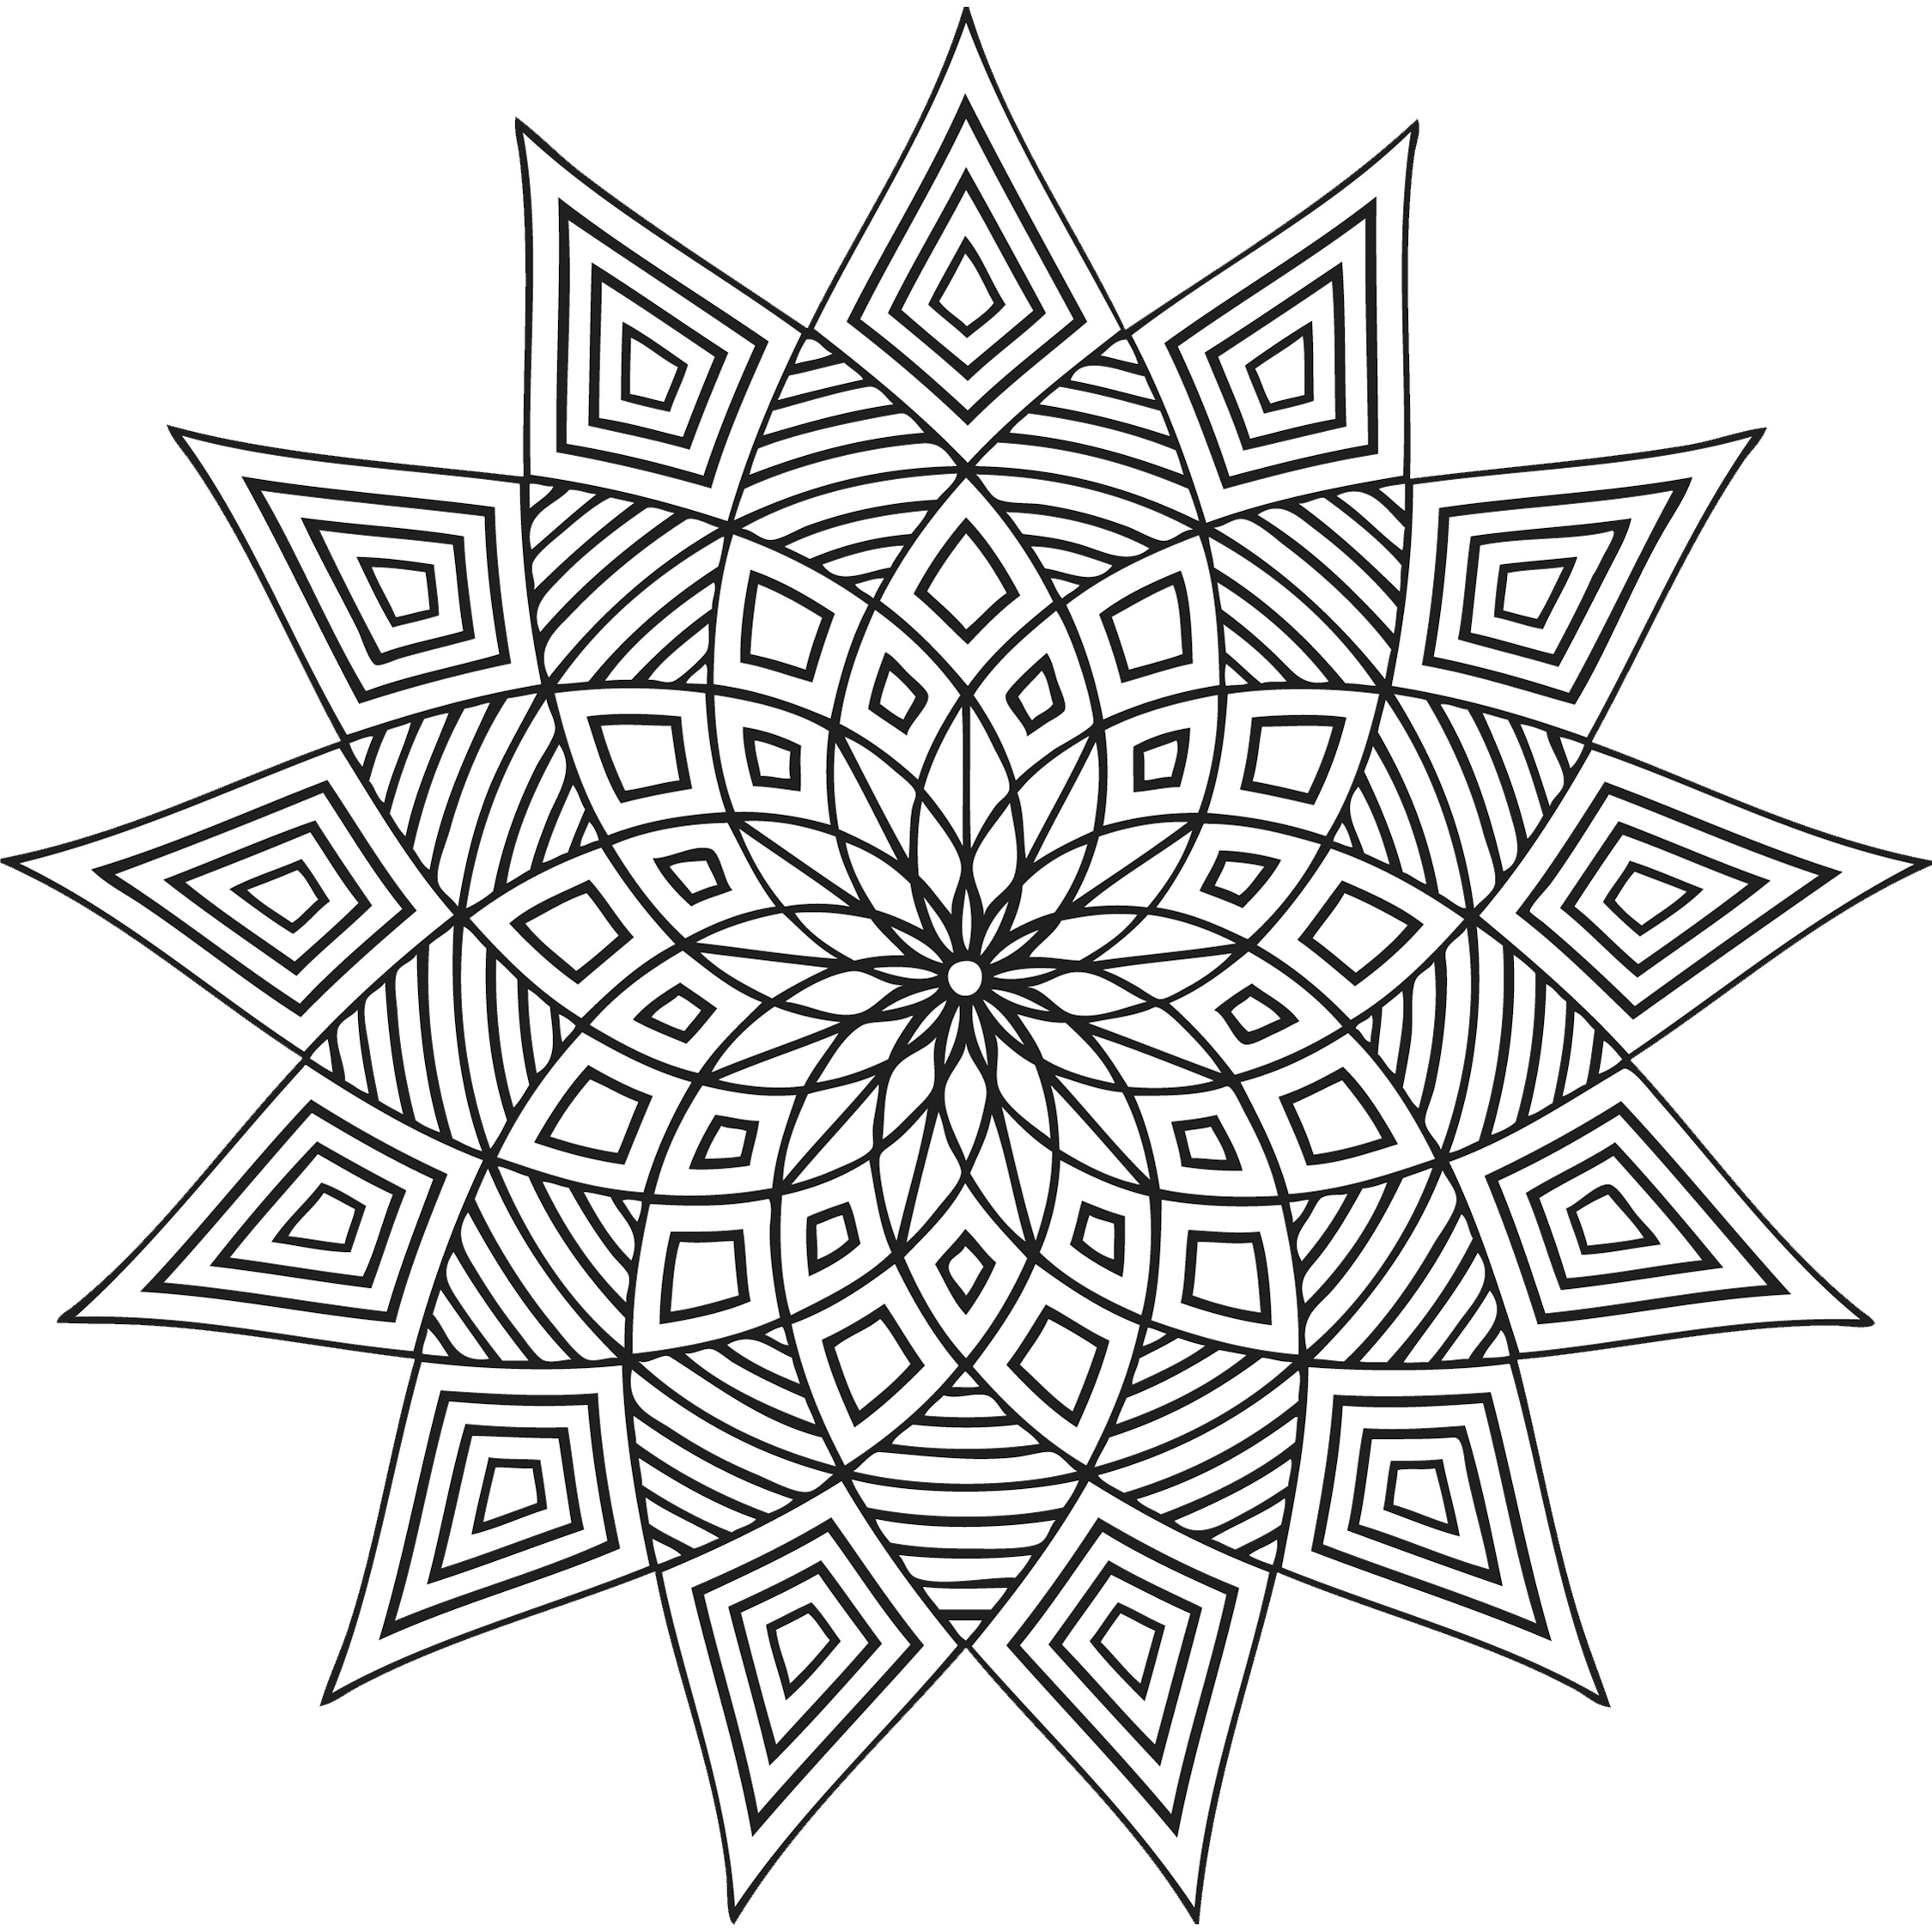 printable designs to color free printable cool coloring pages designs download free to printable color designs